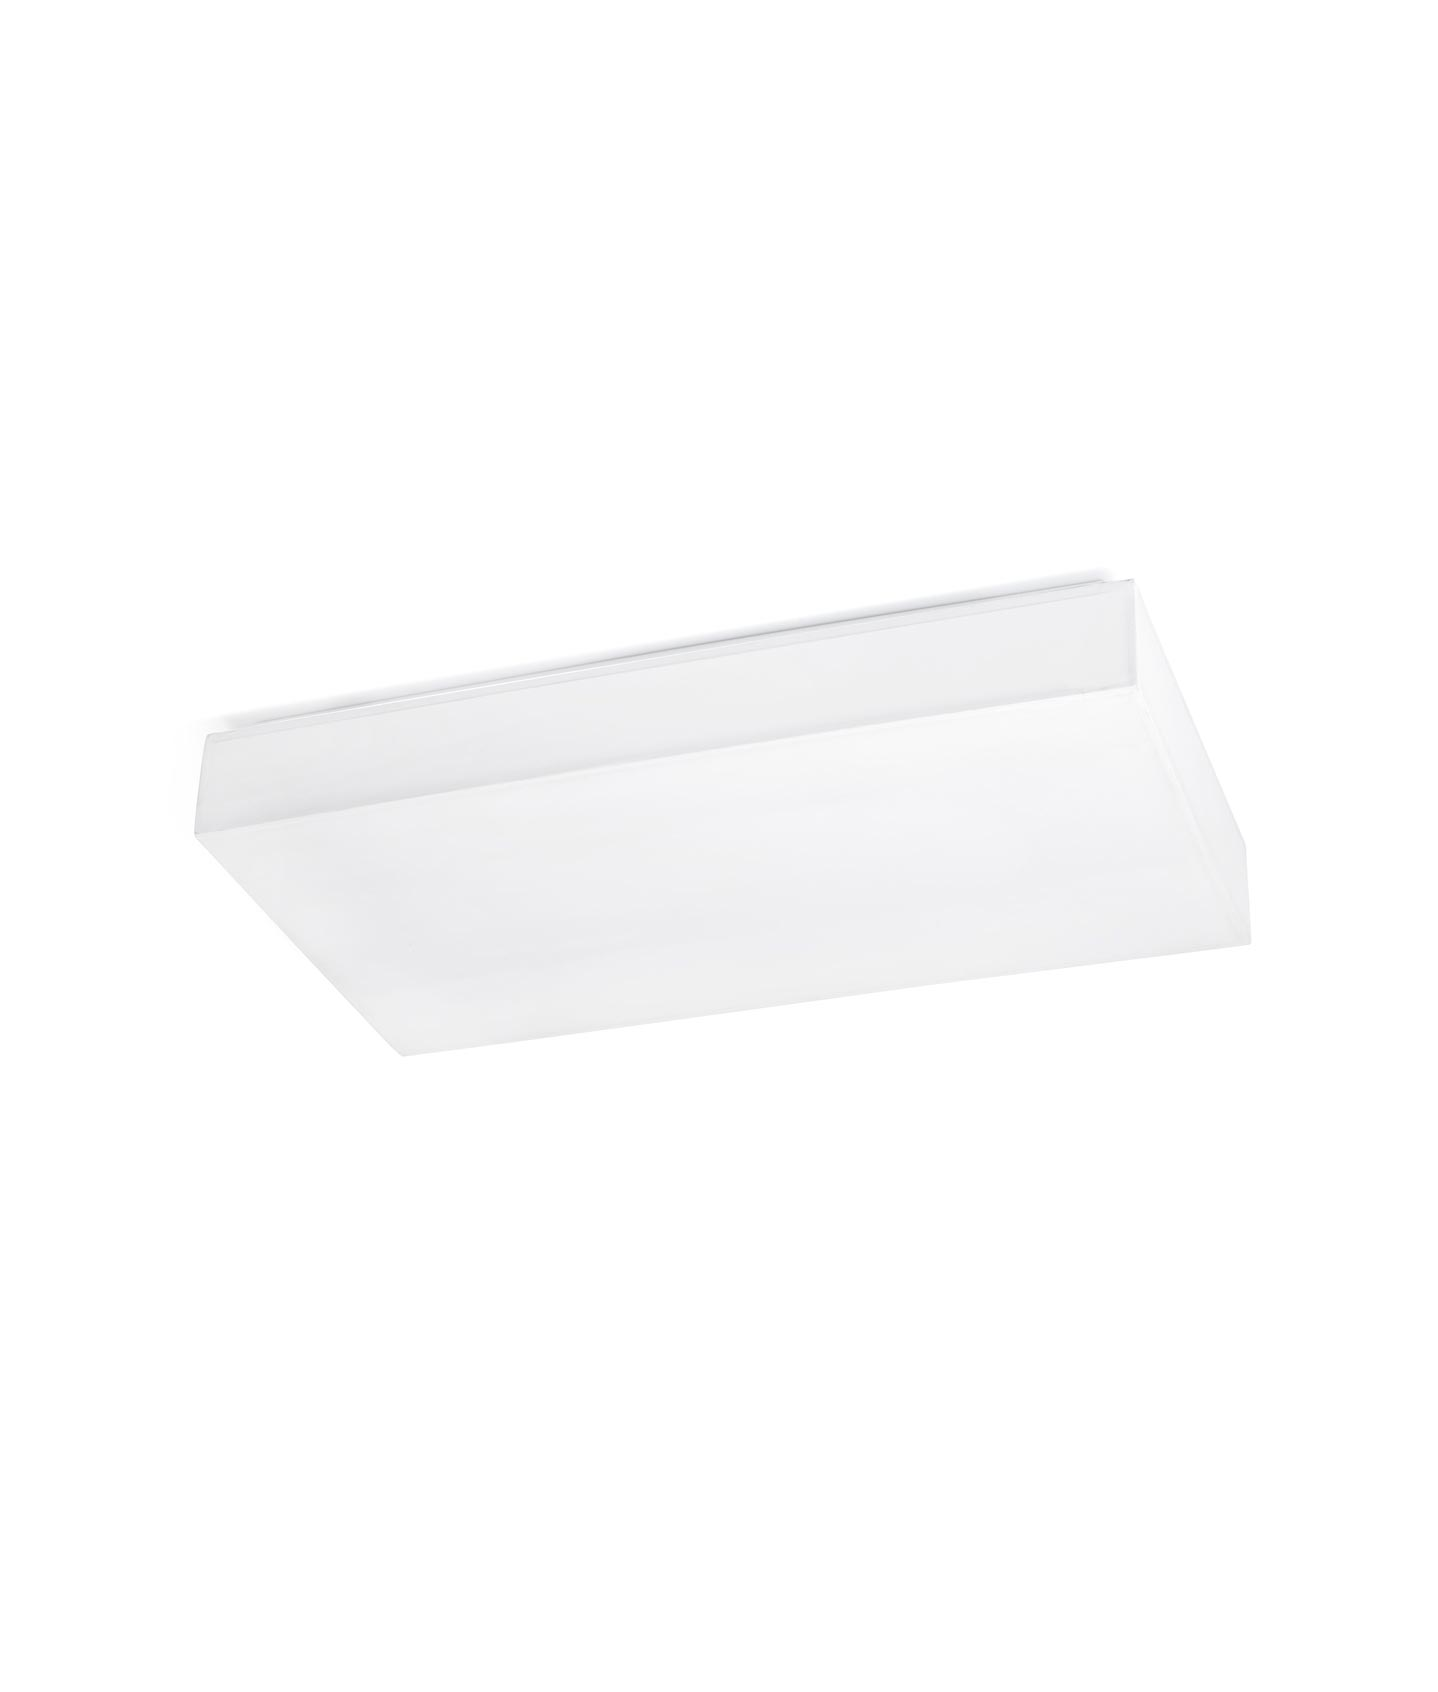 Plaf n rectangular blanco silk 3 led la casa de la l mpara for Plafon led cocina rectangular